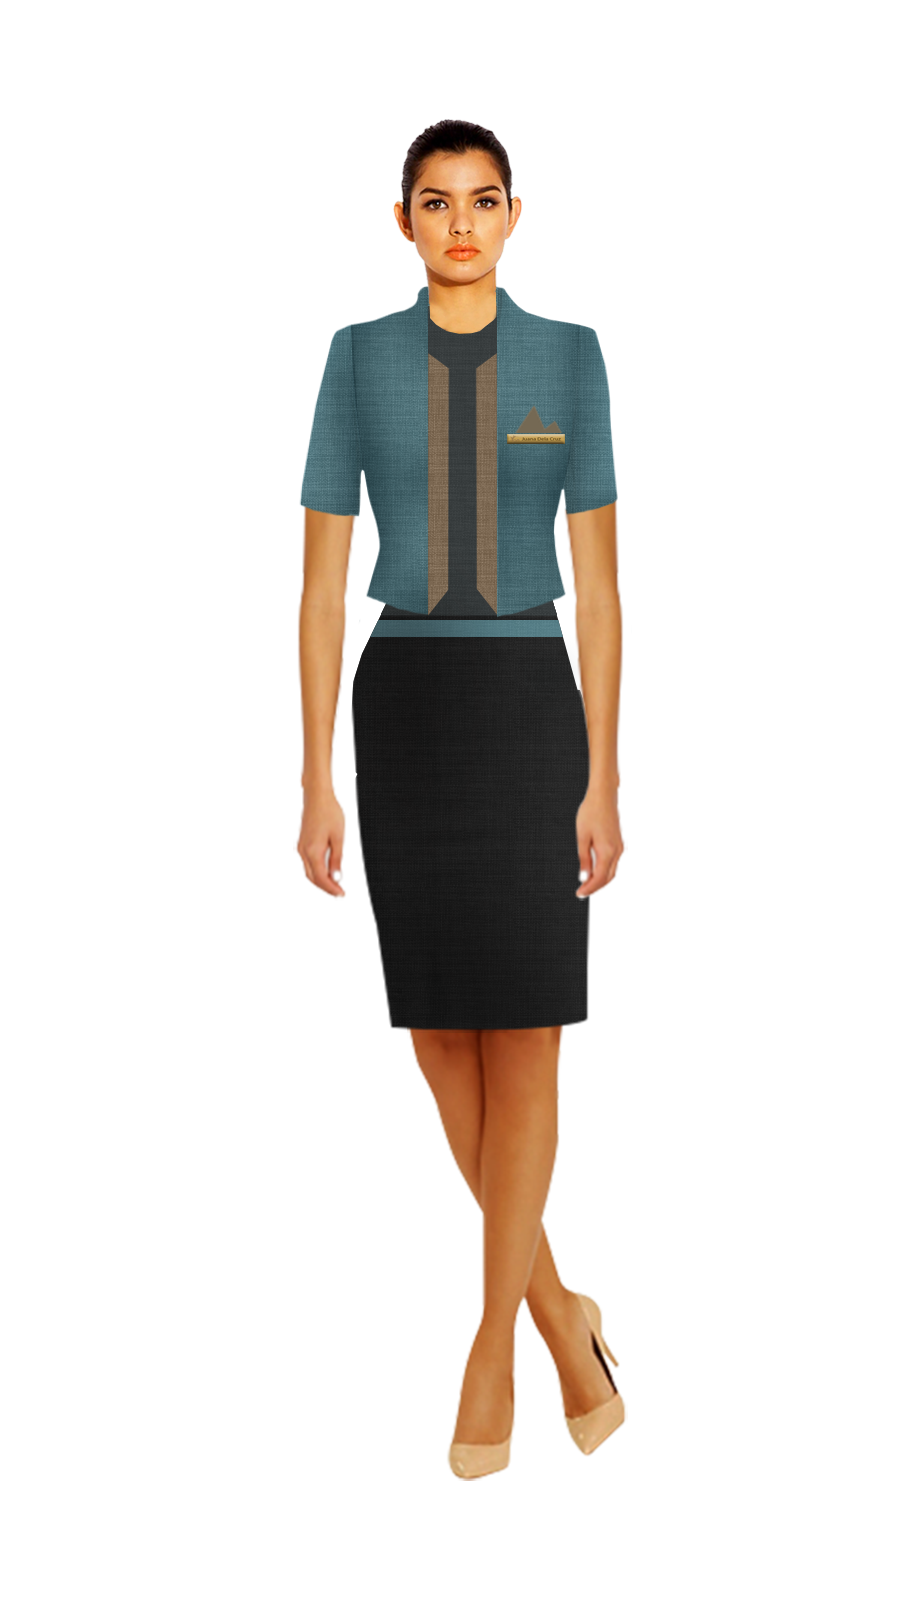 PNG Receptionist - 75841